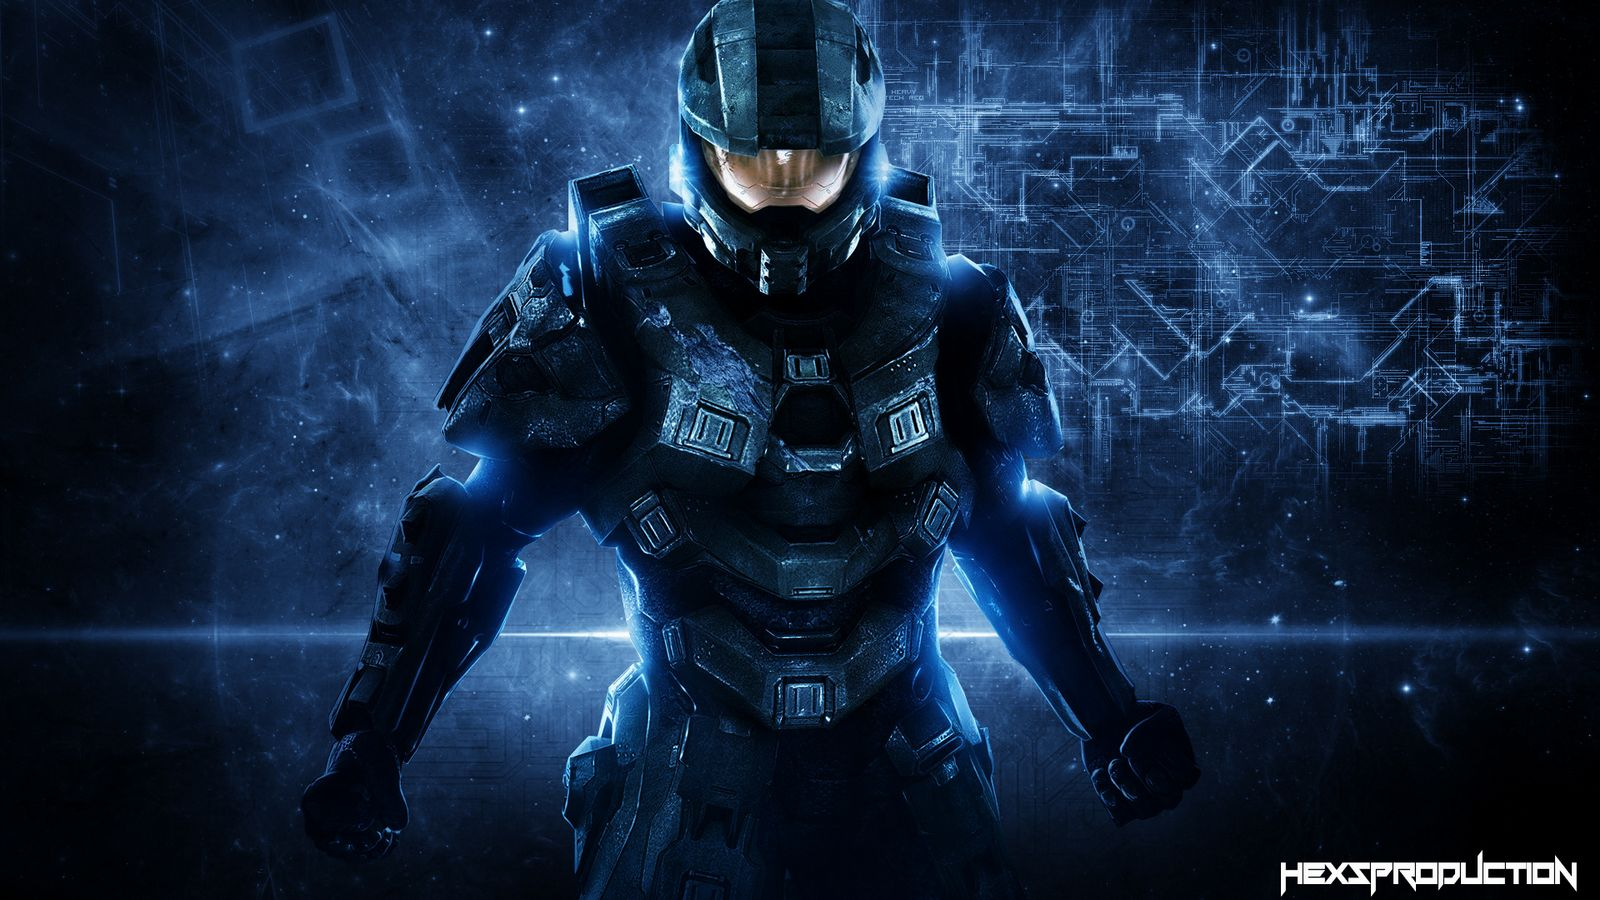 Halo game HD wallpaper